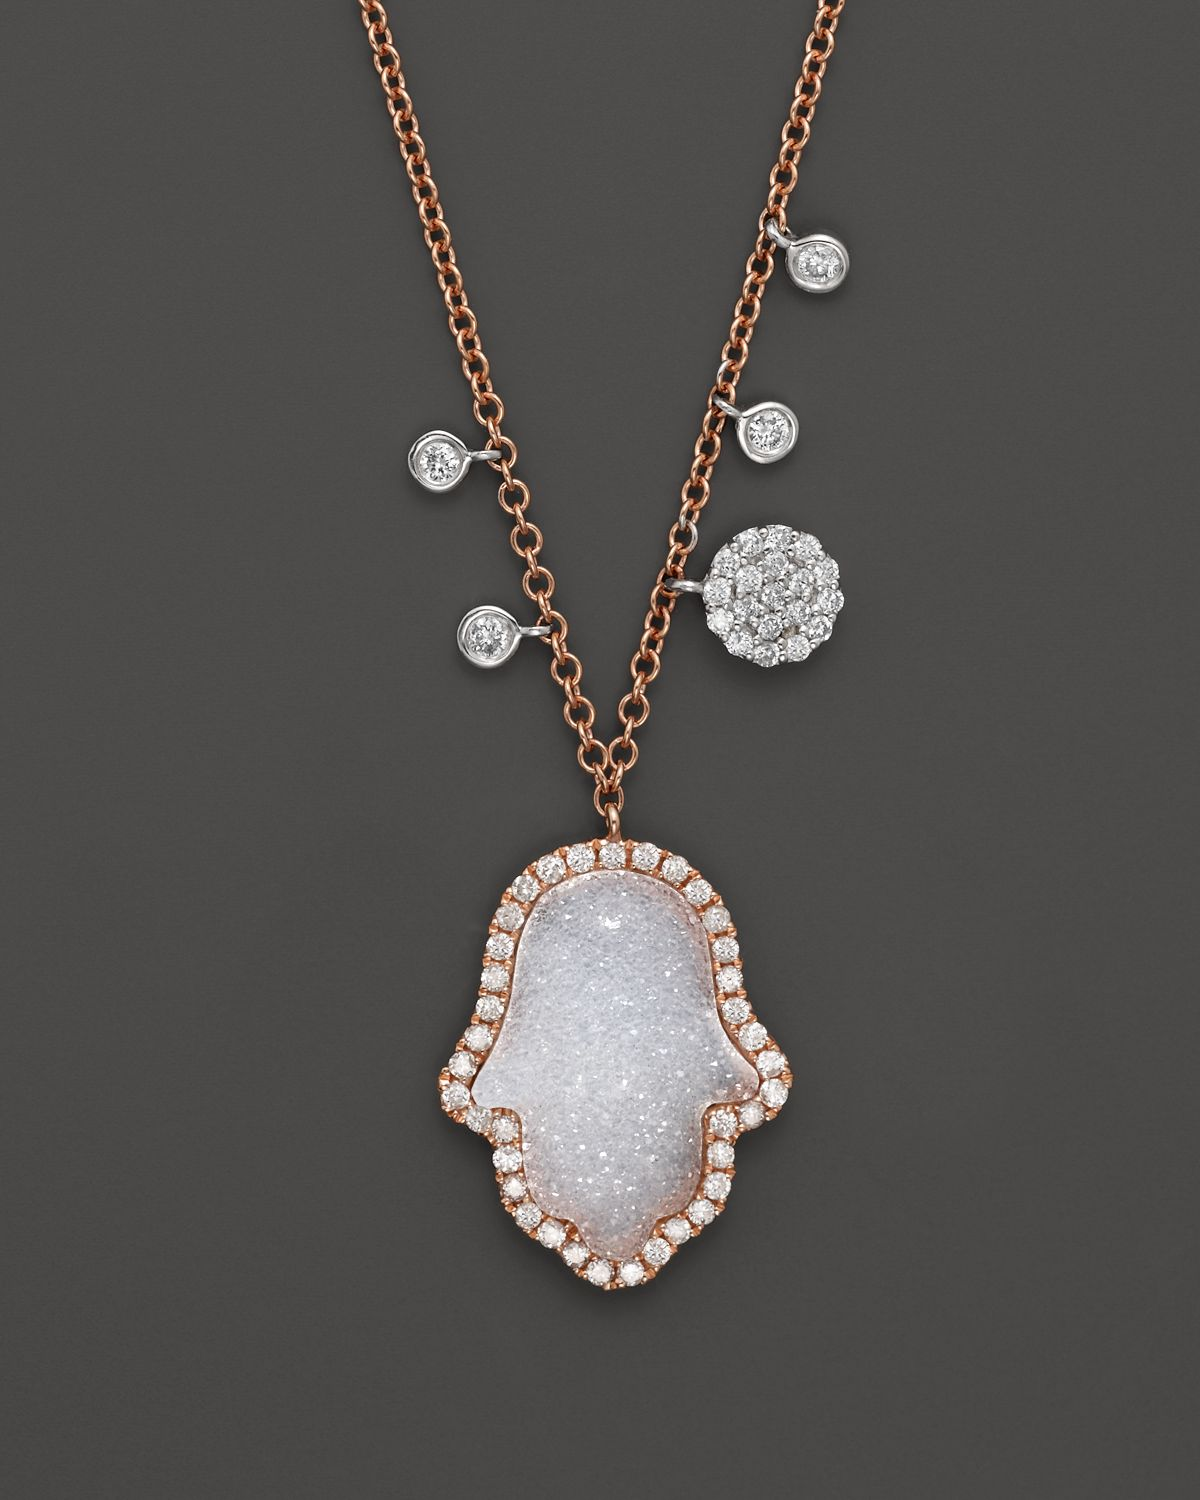 Lyst meira t 14k rose gold diamond and druzy hamsa necklace in white gallery mozeypictures